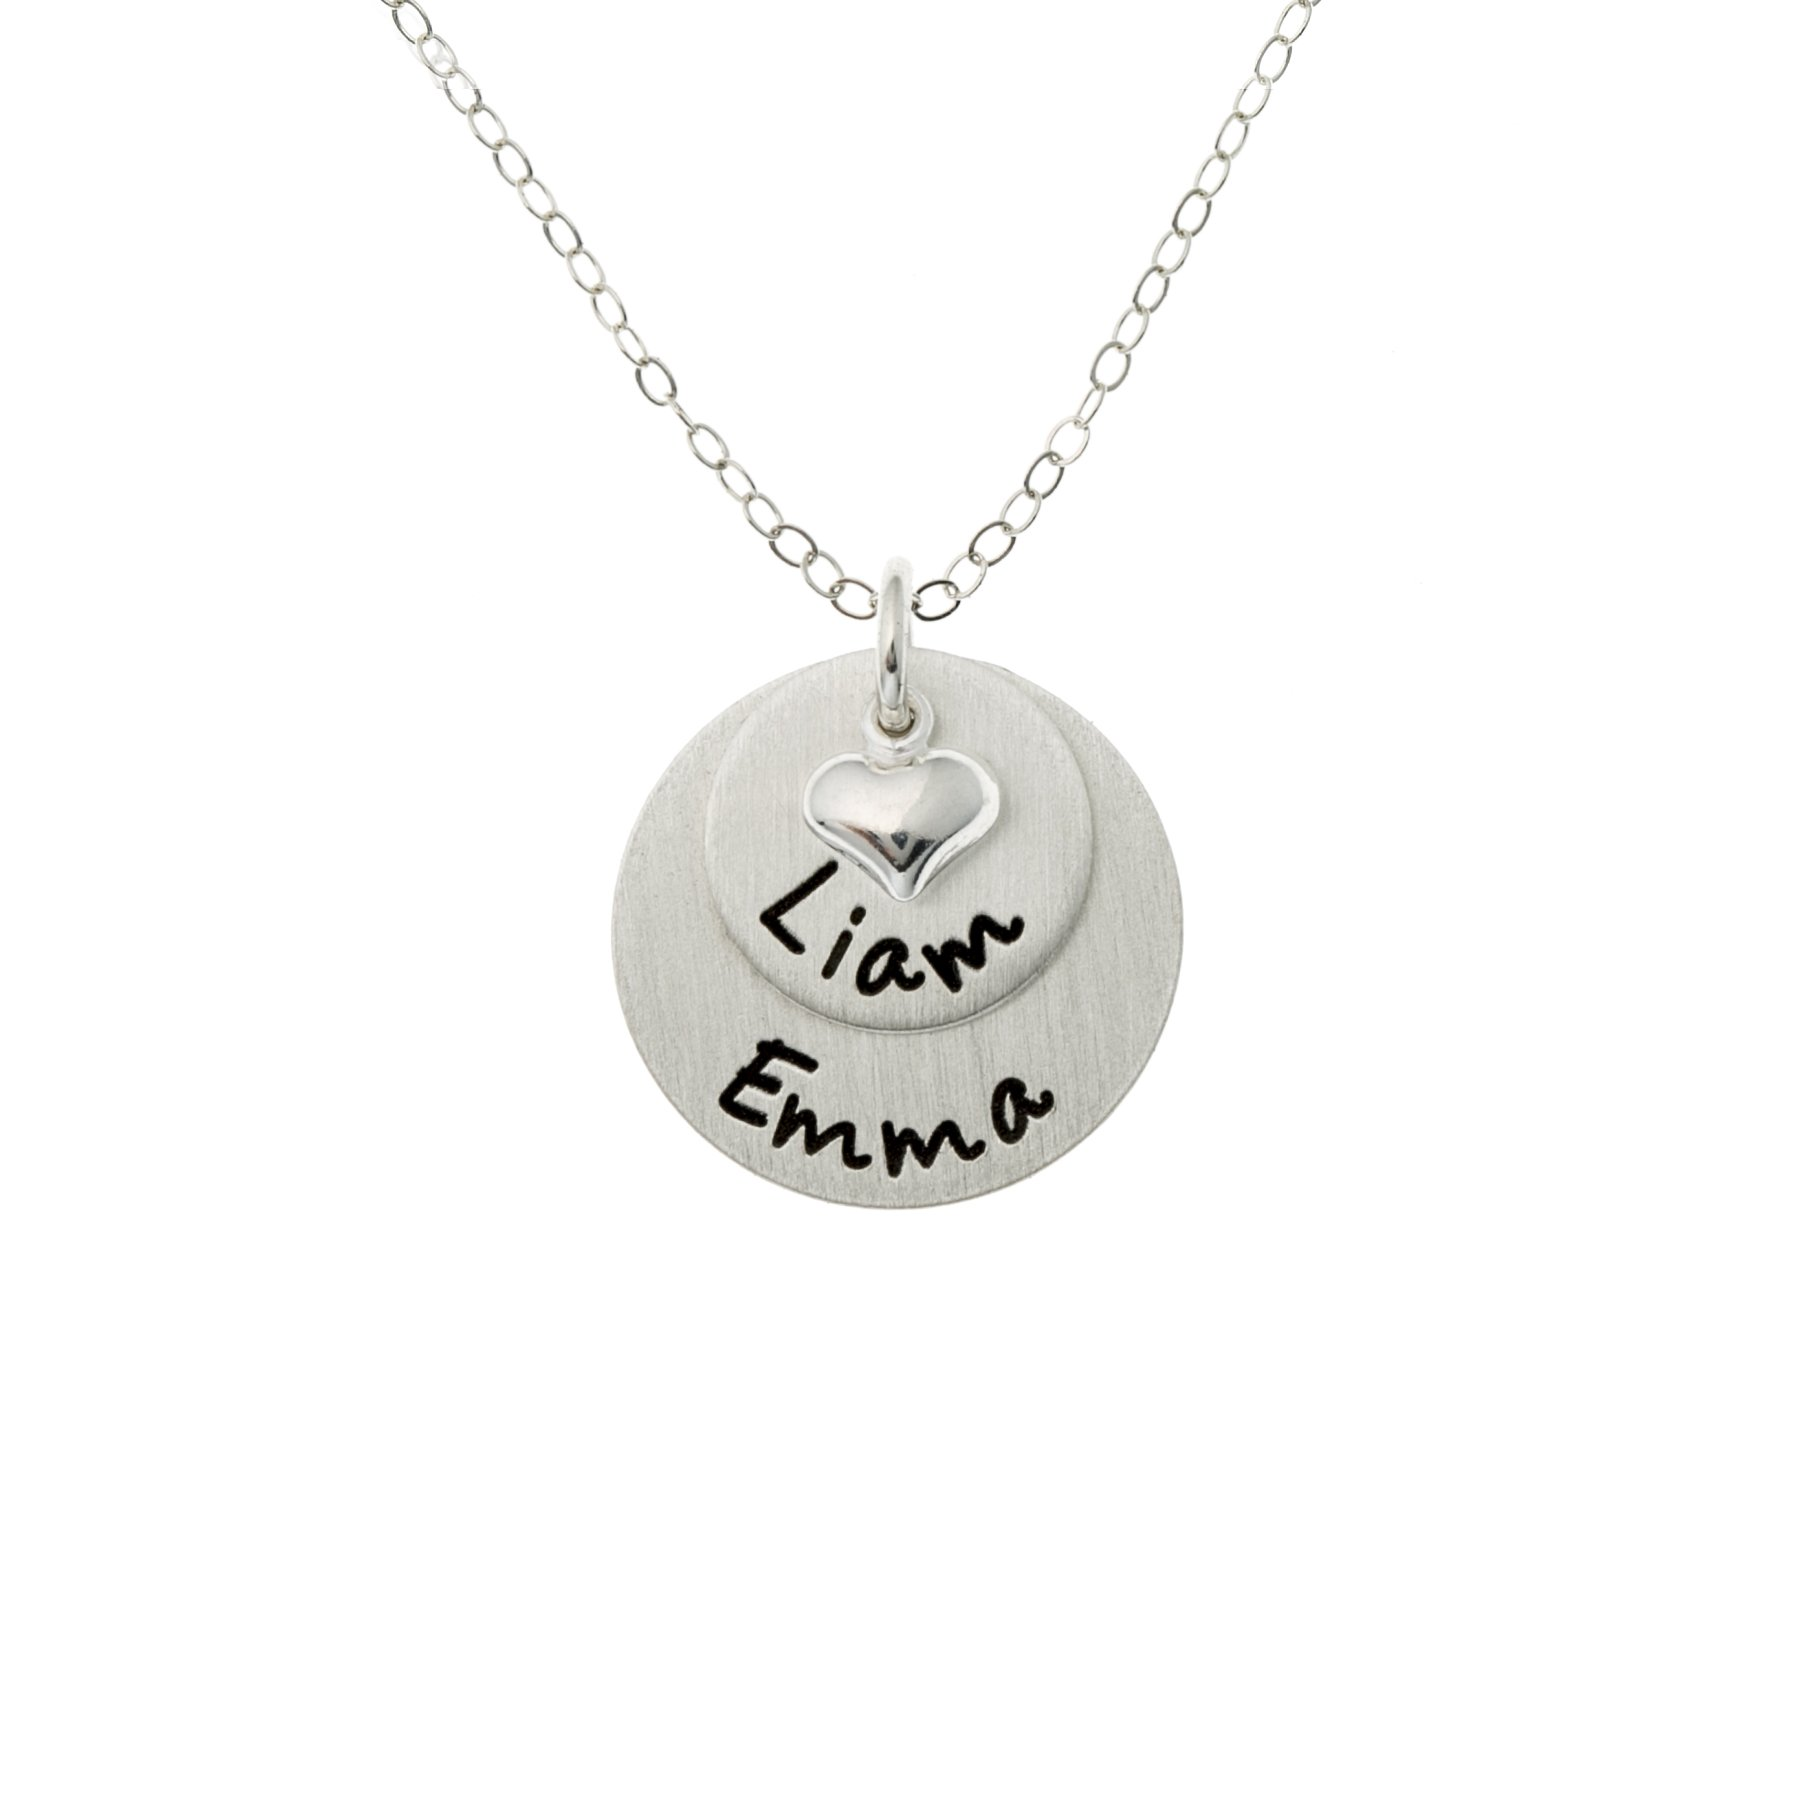 AJ's Collection Flat Lucky Two Personalized Sterling Silver Name Necklace. Customize with 2 names. Matte Finish. Choice of Sterling Silver Chain. Gifts for Her, Mom, Wife, Girlfriend, Grandmother